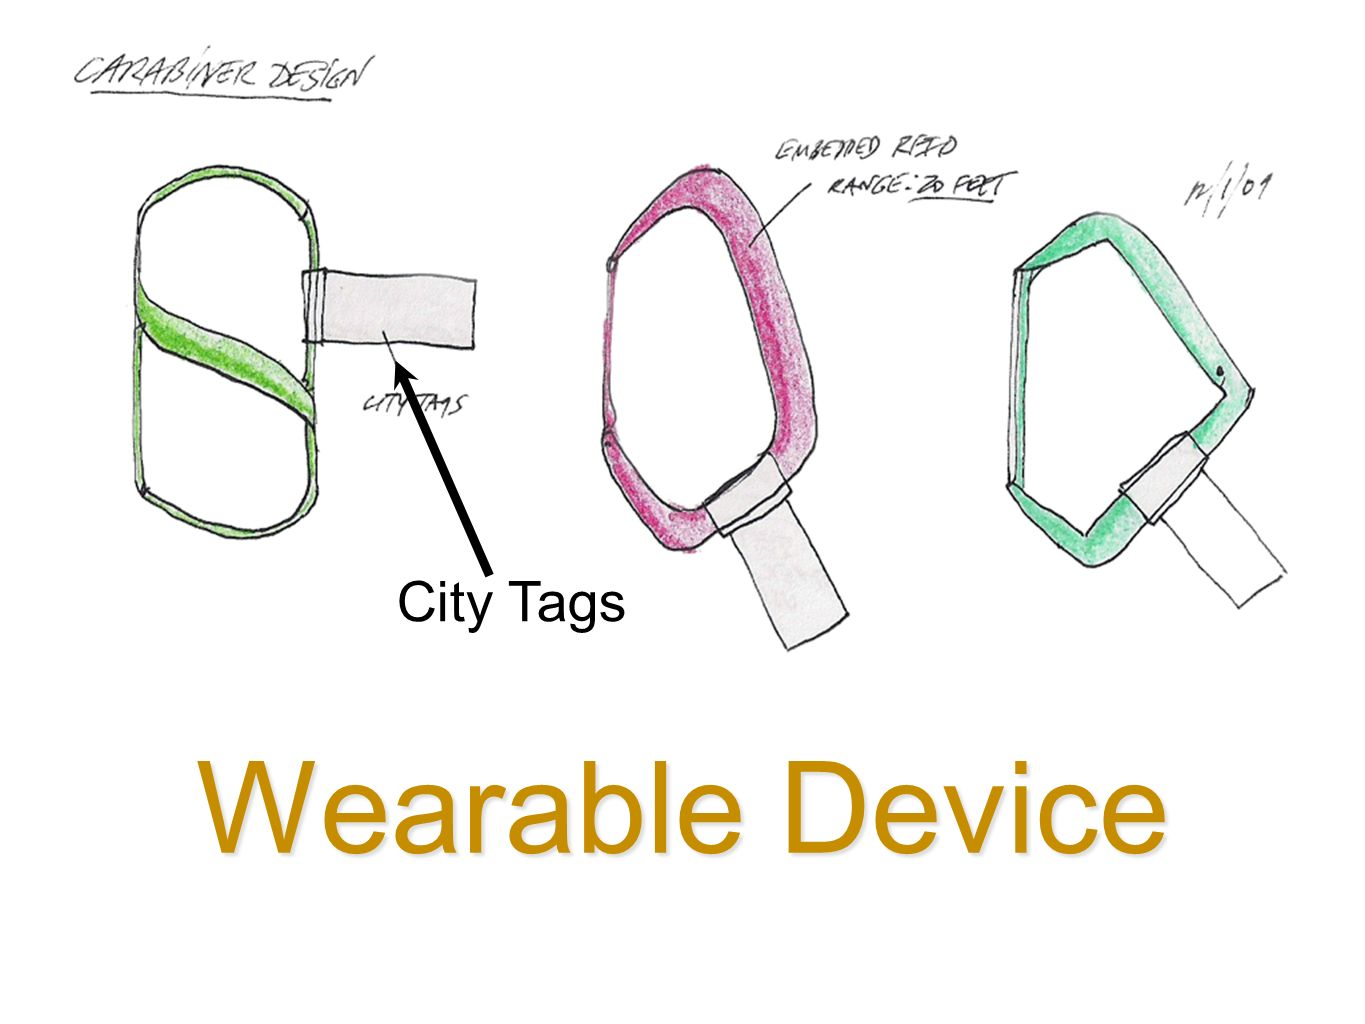 Wearable Device City Tags